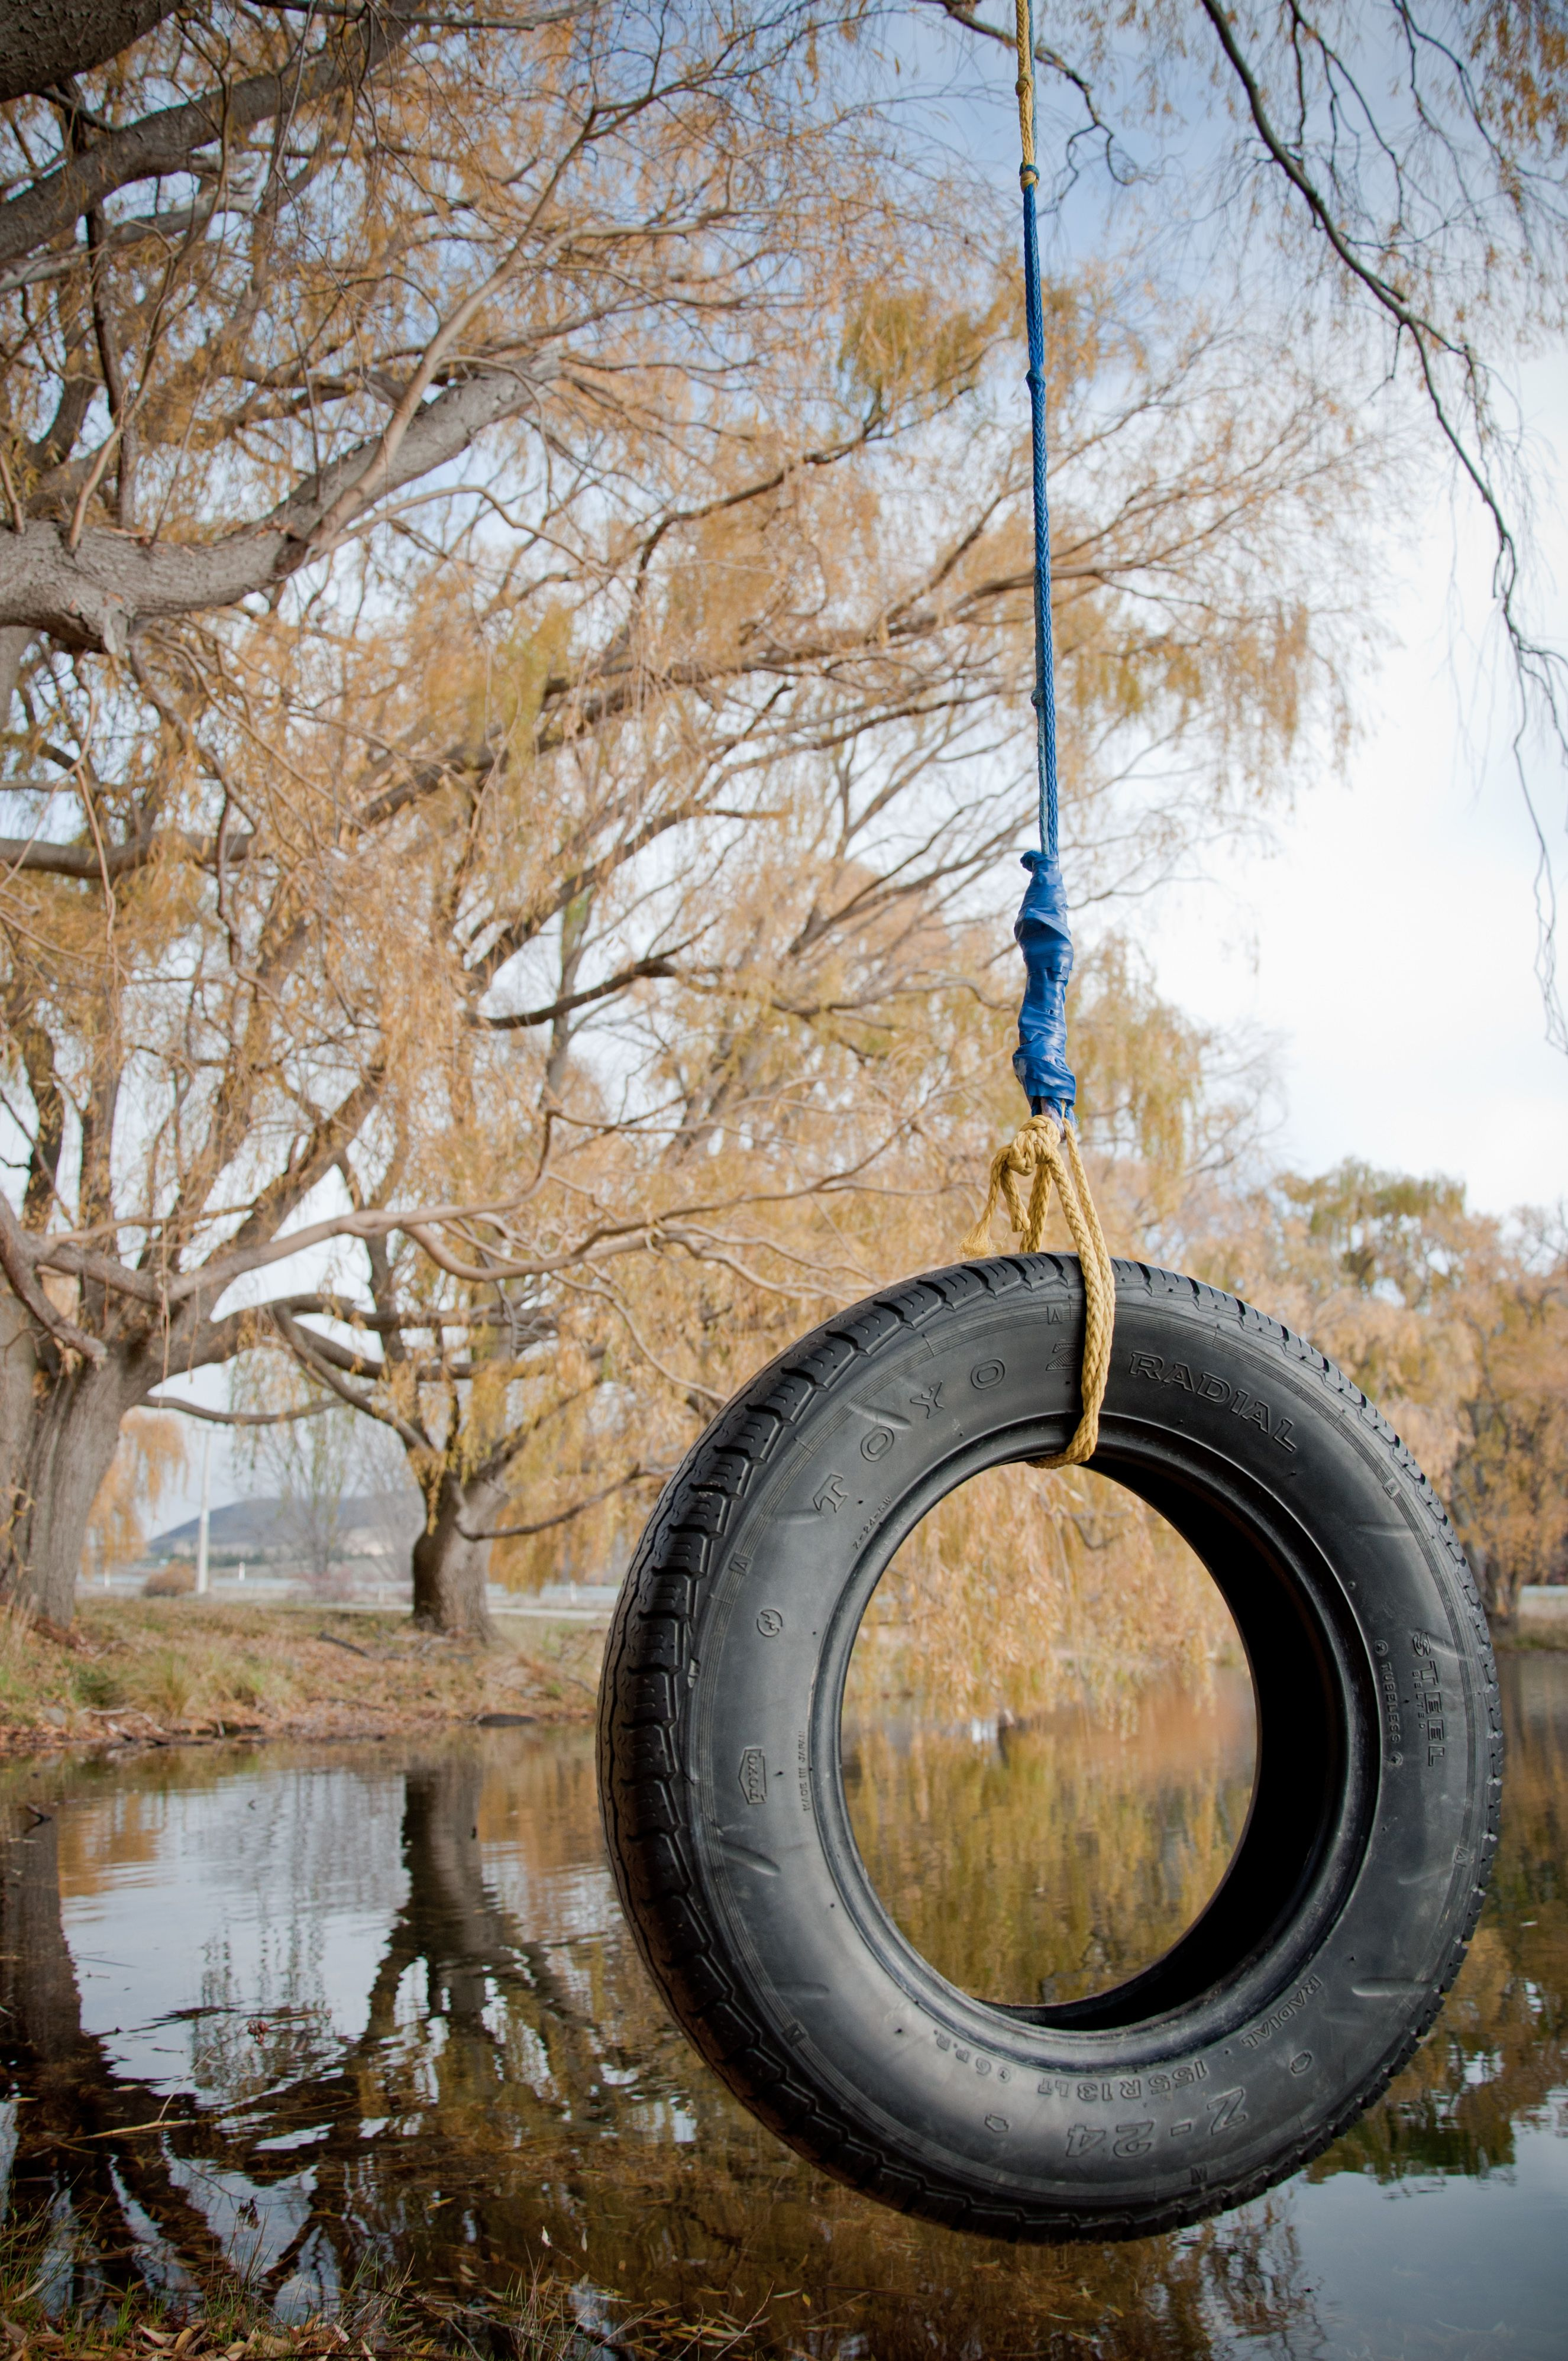 Tree swing meme what the customer really wanted - Just A Tire Swing But It Reminds Me Of A Time When I Was A Little